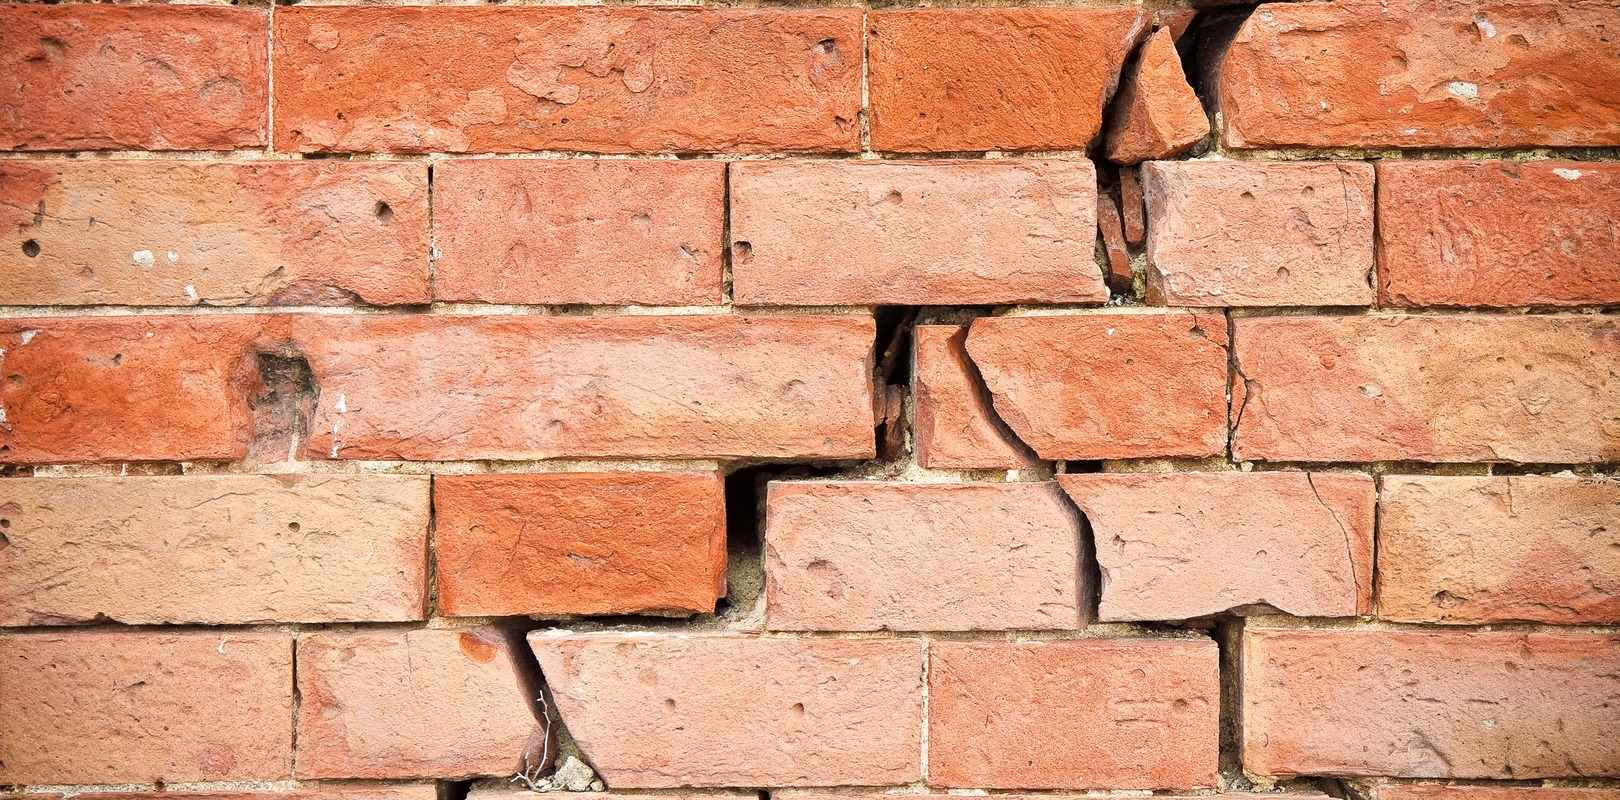 Home with subsidence and a crack in the wall